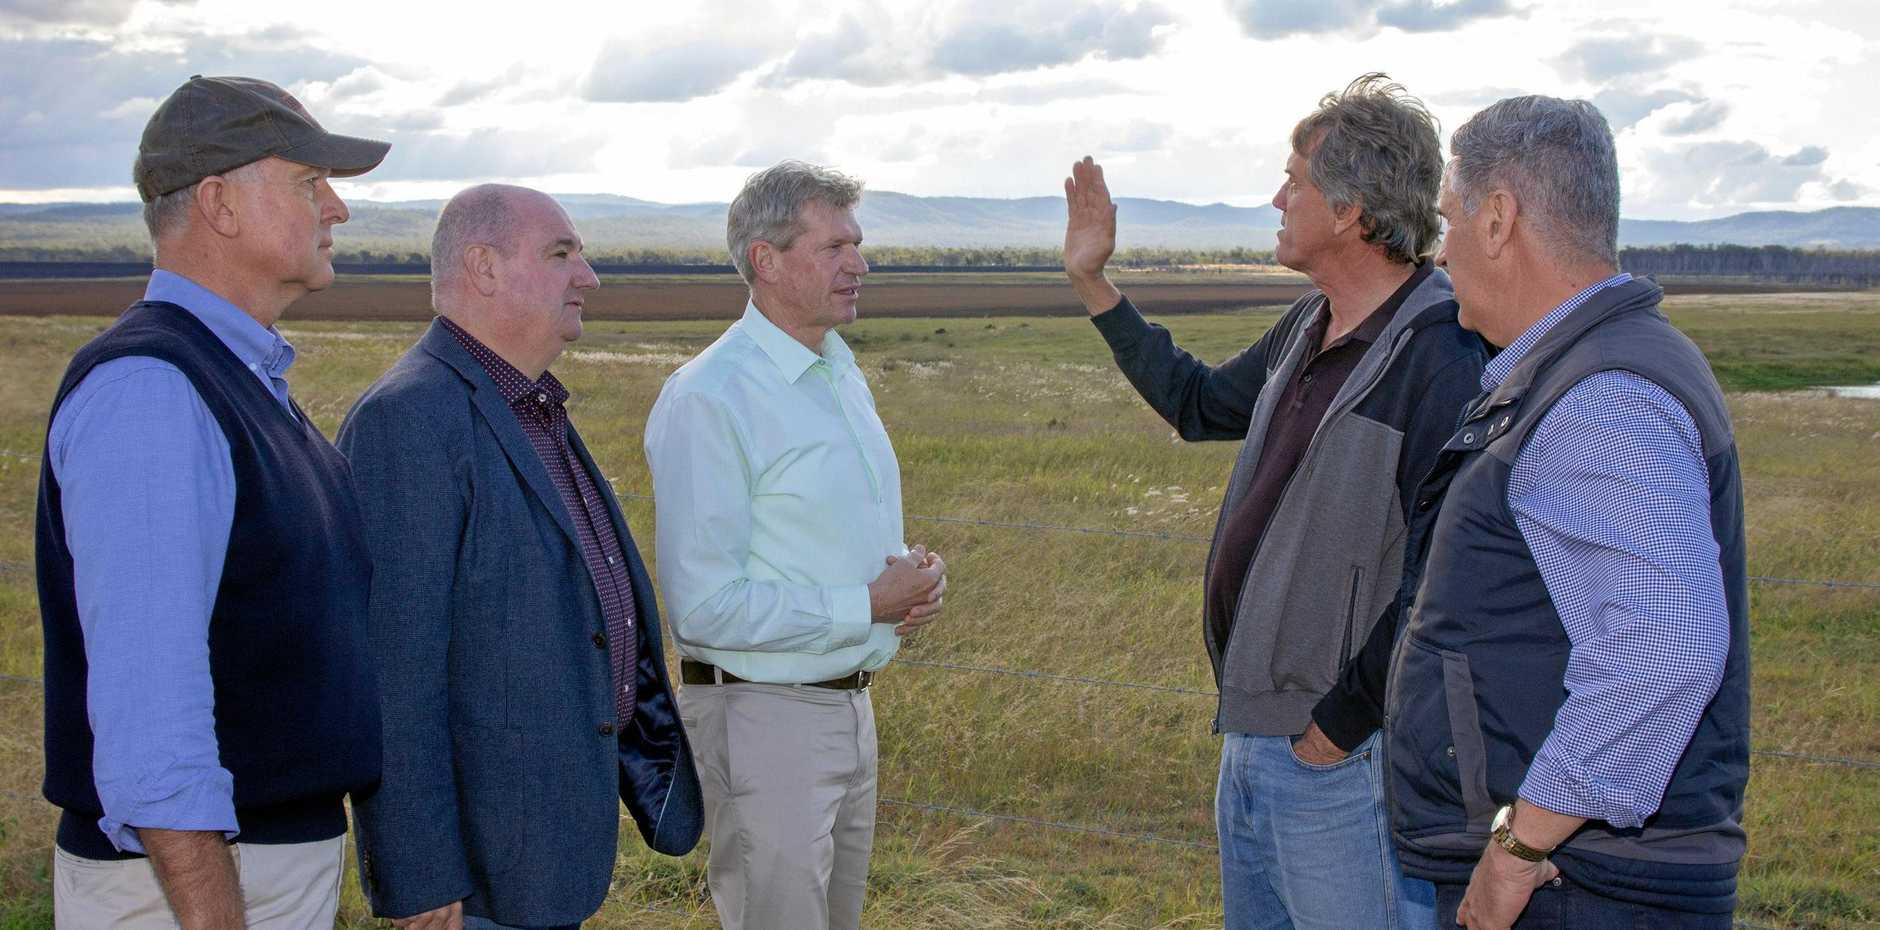 SOLUTION NEEDED: Opposition MPs Tony Perrett and Michael Hart, member for Lockyer Jim McDonald, Lockyer Water Users Forum member Gordon Van der Est and shadow minister for natural resources Dale Last discuss irrigation in the Lockyer Valley at a dry Lake Clarendon.